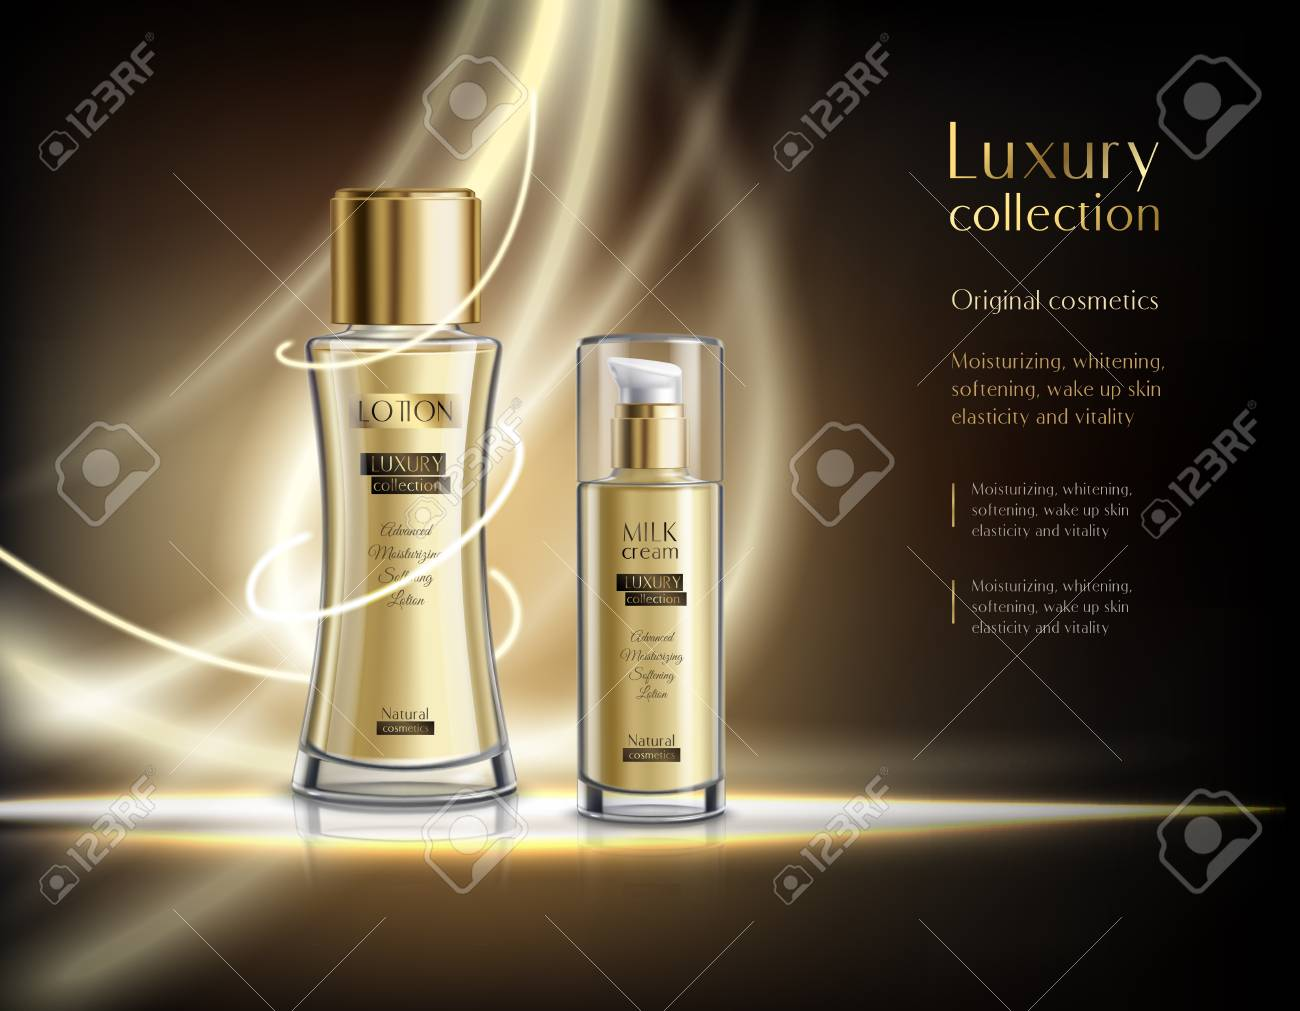 Luxury perfume cosmetics collection realistic advertisement poster with glowing lotion glass spray bottles dark background vector illustration - 94983379